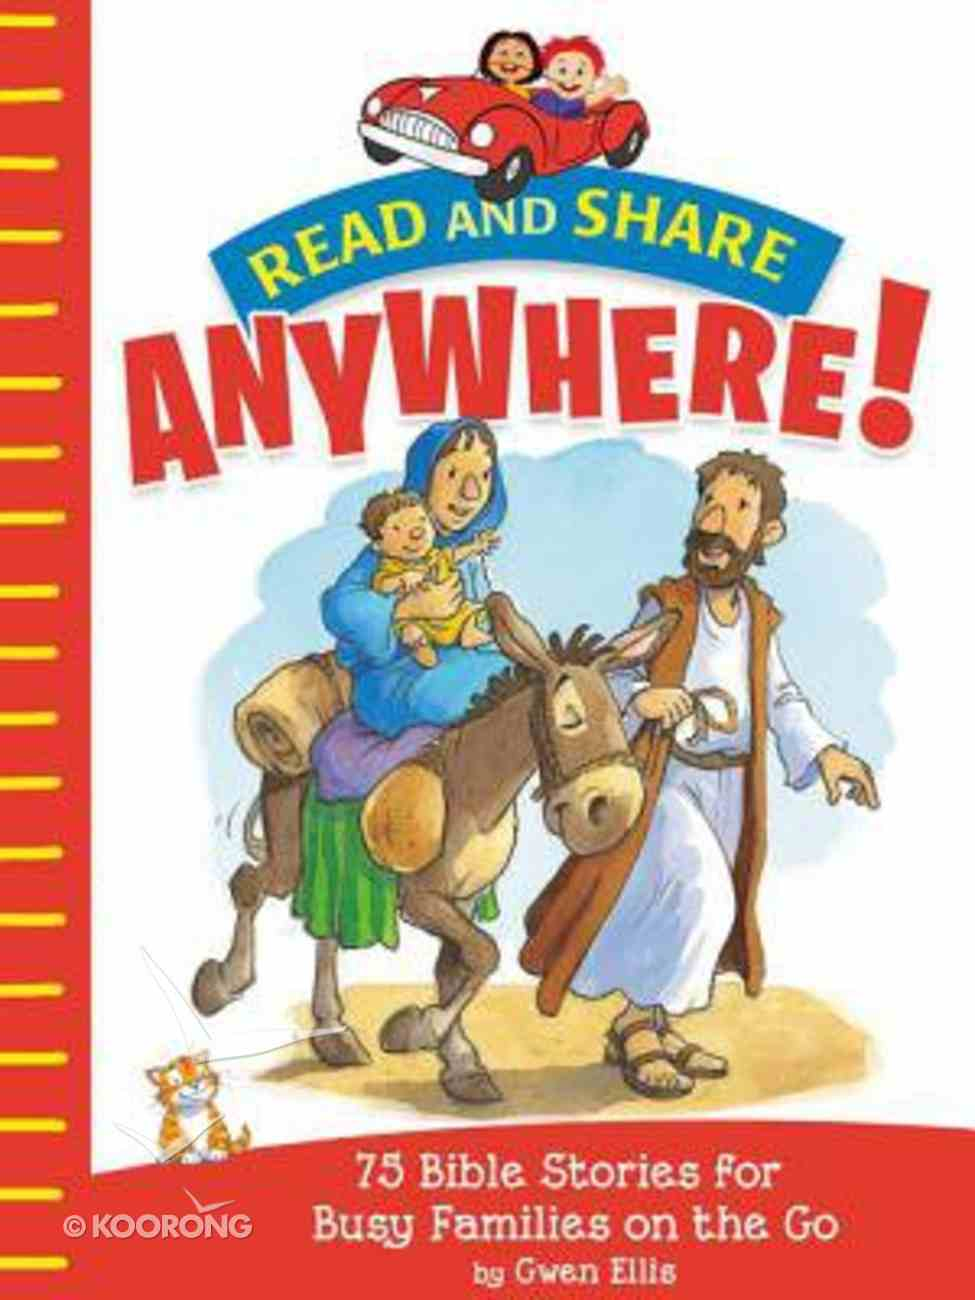 Read and Share Anywhere!: 75 Bible Stories For Busy Families on the Go Paperback